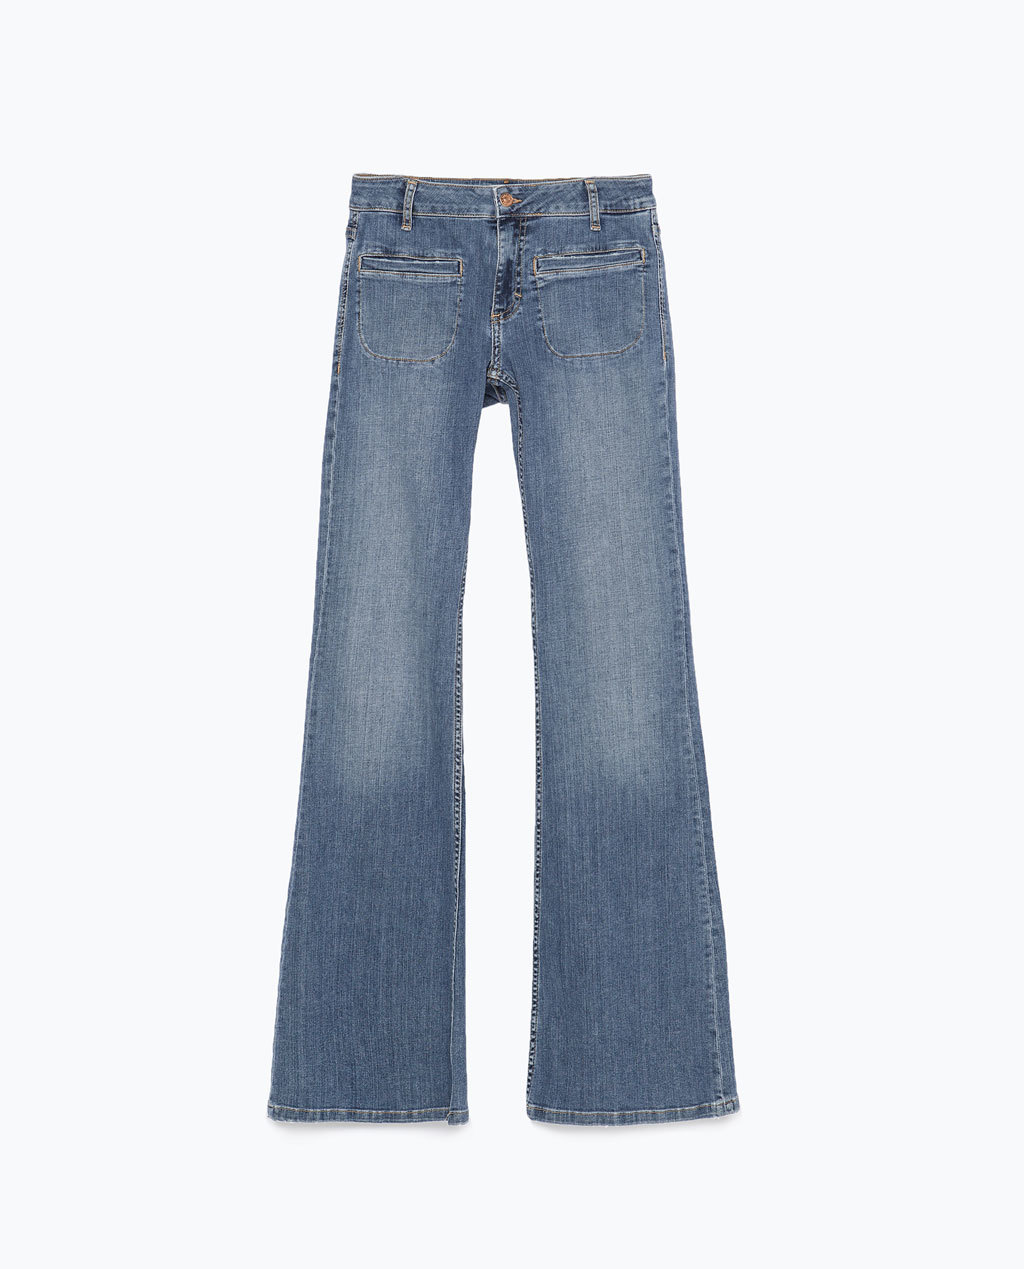 Bootcut Denim Jeans - style: bootcut; length: standard; pattern: plain; waist: high rise; pocket detail: traditional 5 pocket; predominant colour: denim; occasions: casual; fibres: cotton - stretch; jeans detail: shading down centre of thigh, washed/faded; texture group: denim; pattern type: fabric; trends: seventies retro; season: s/s 2015; wardrobe: basic